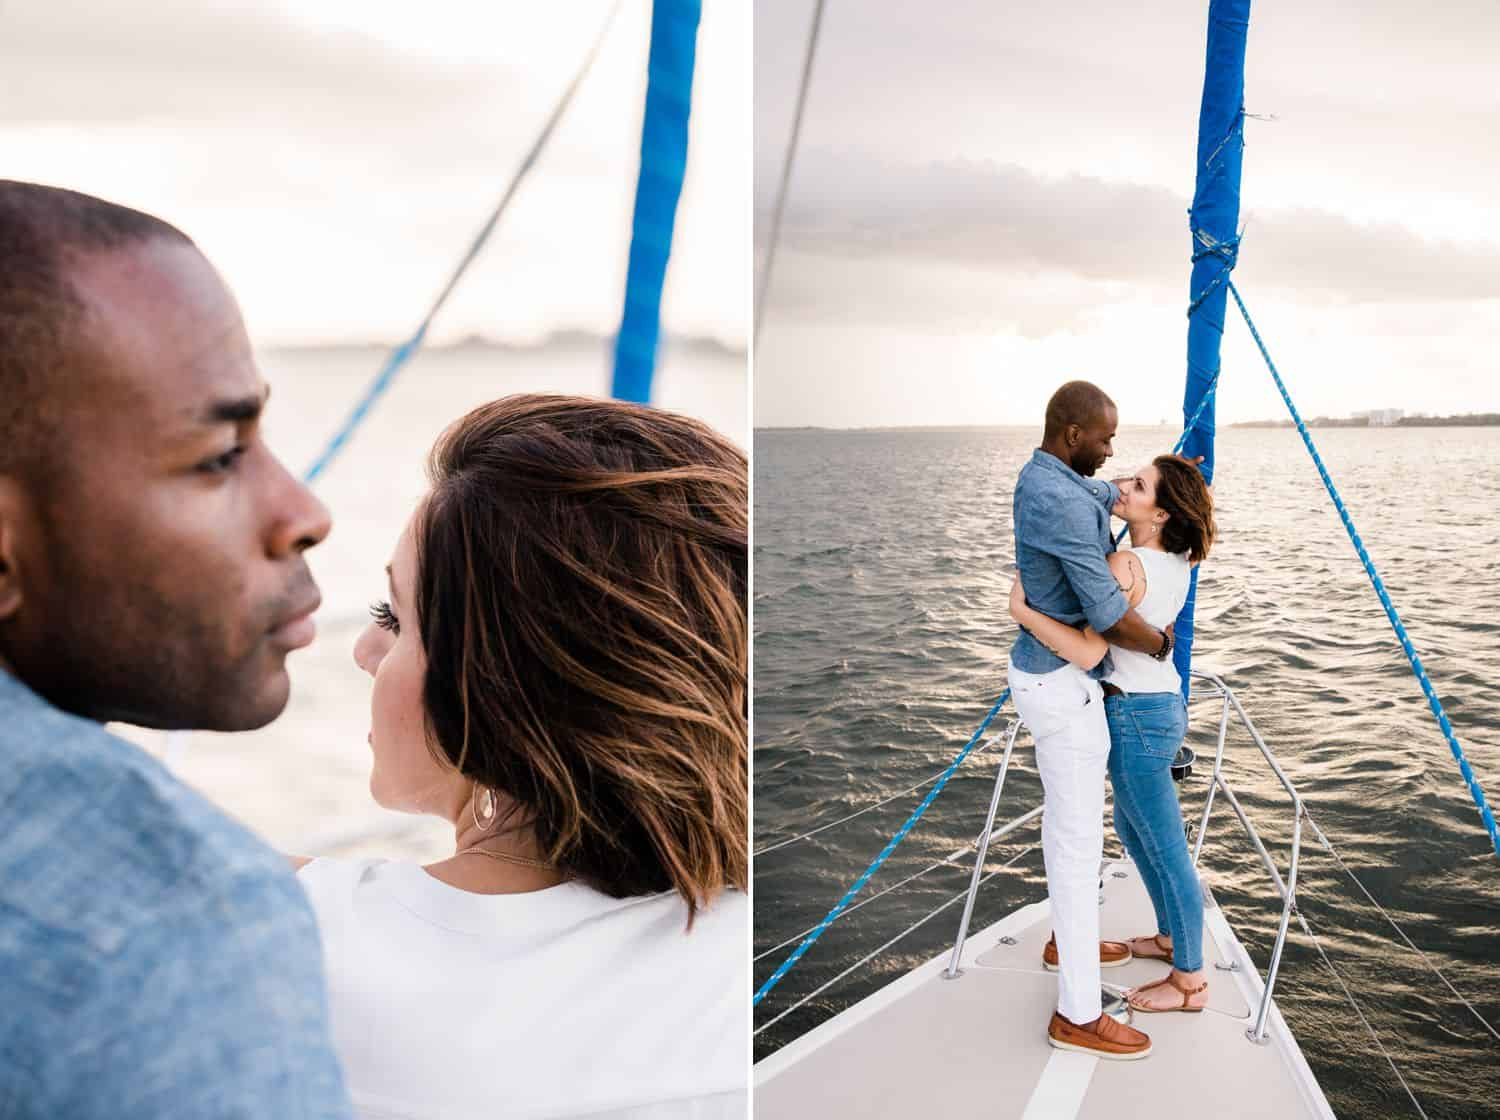 A Black man and a White woman sail together at sunset